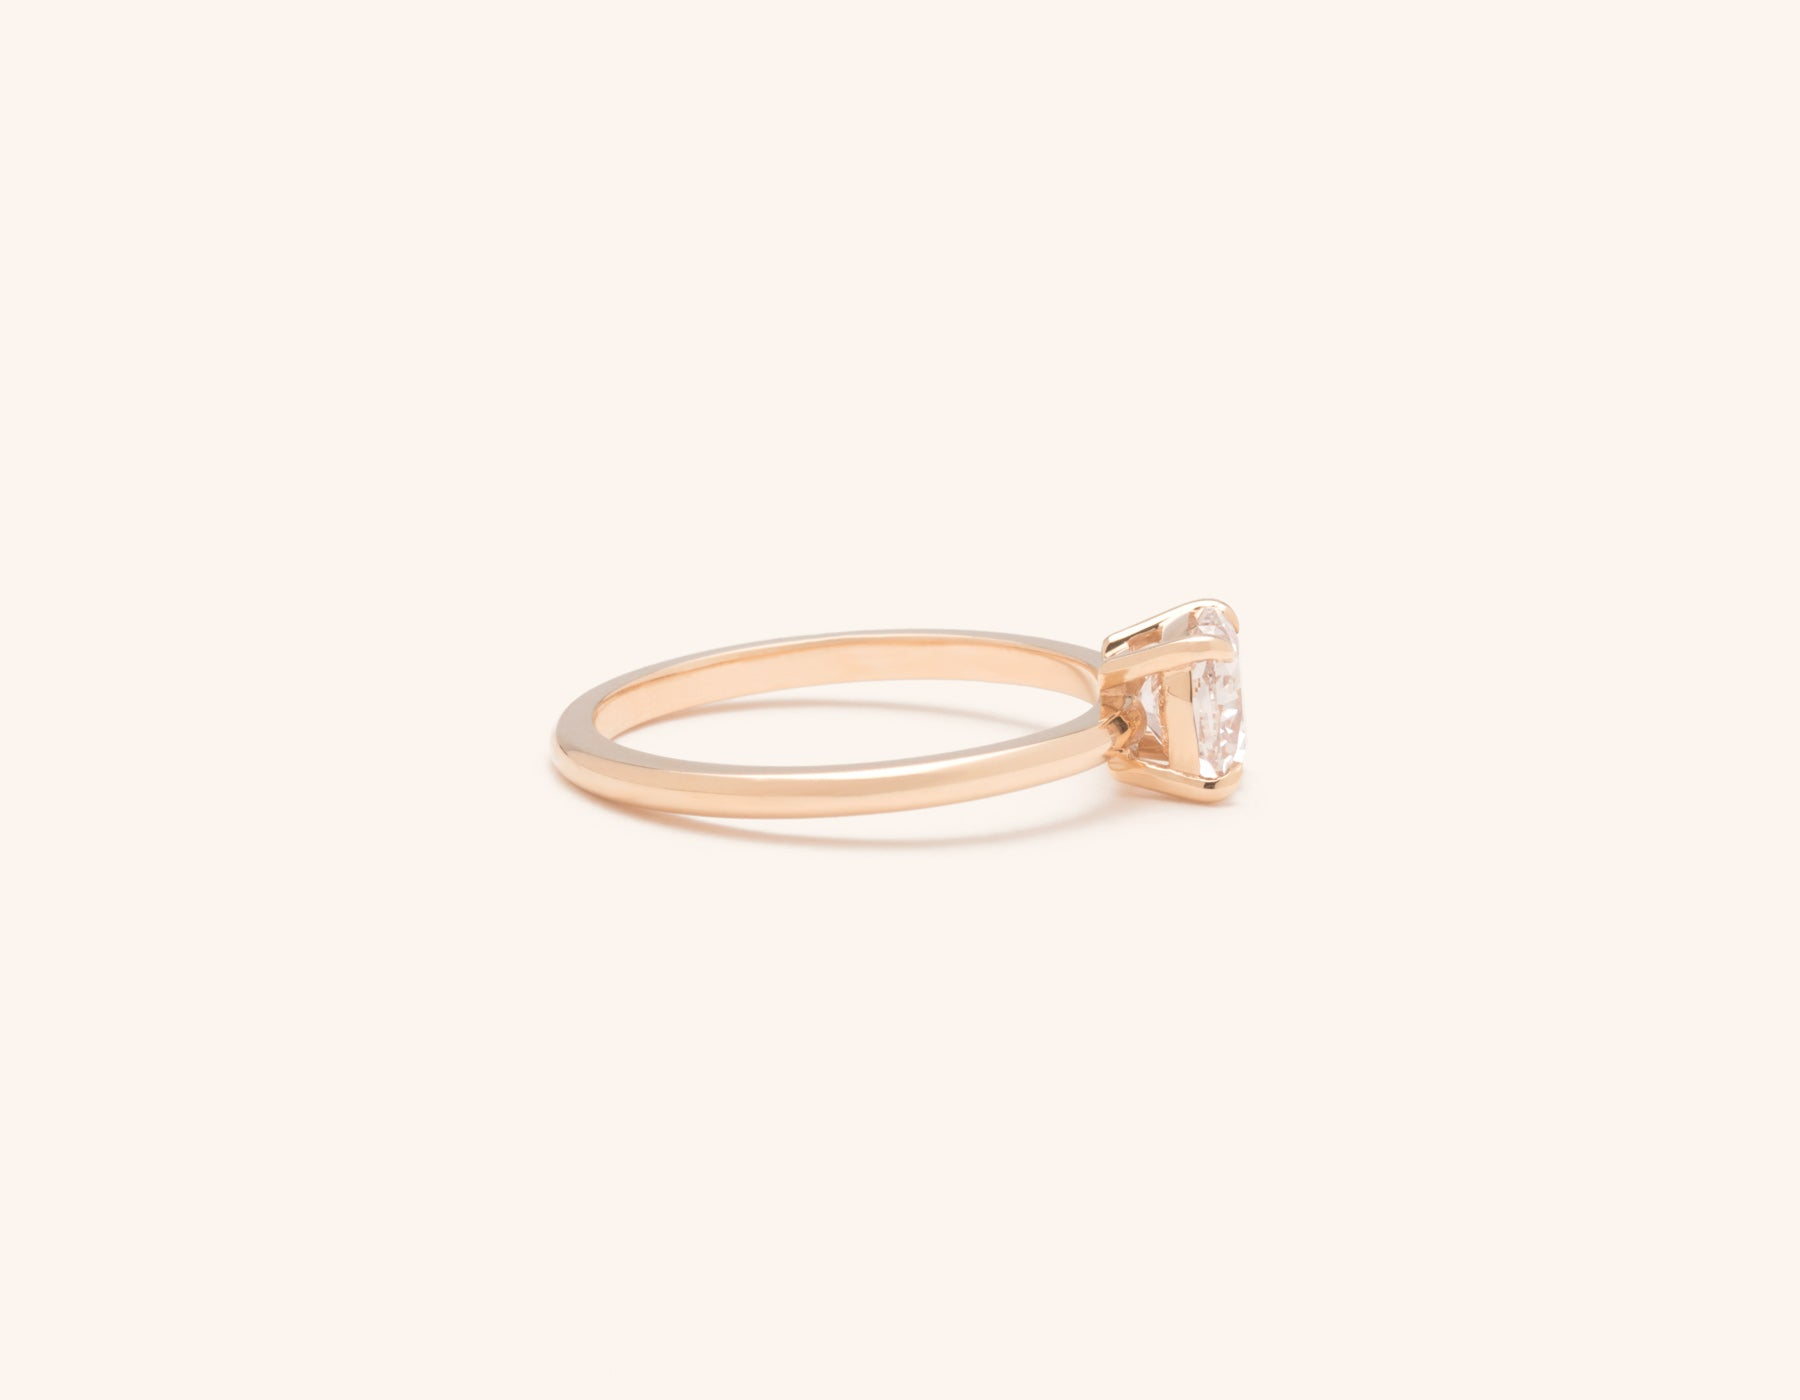 Simple modern 18k solid rose gold 1 carat Cushion diamond engagement ring Vrai & Oro